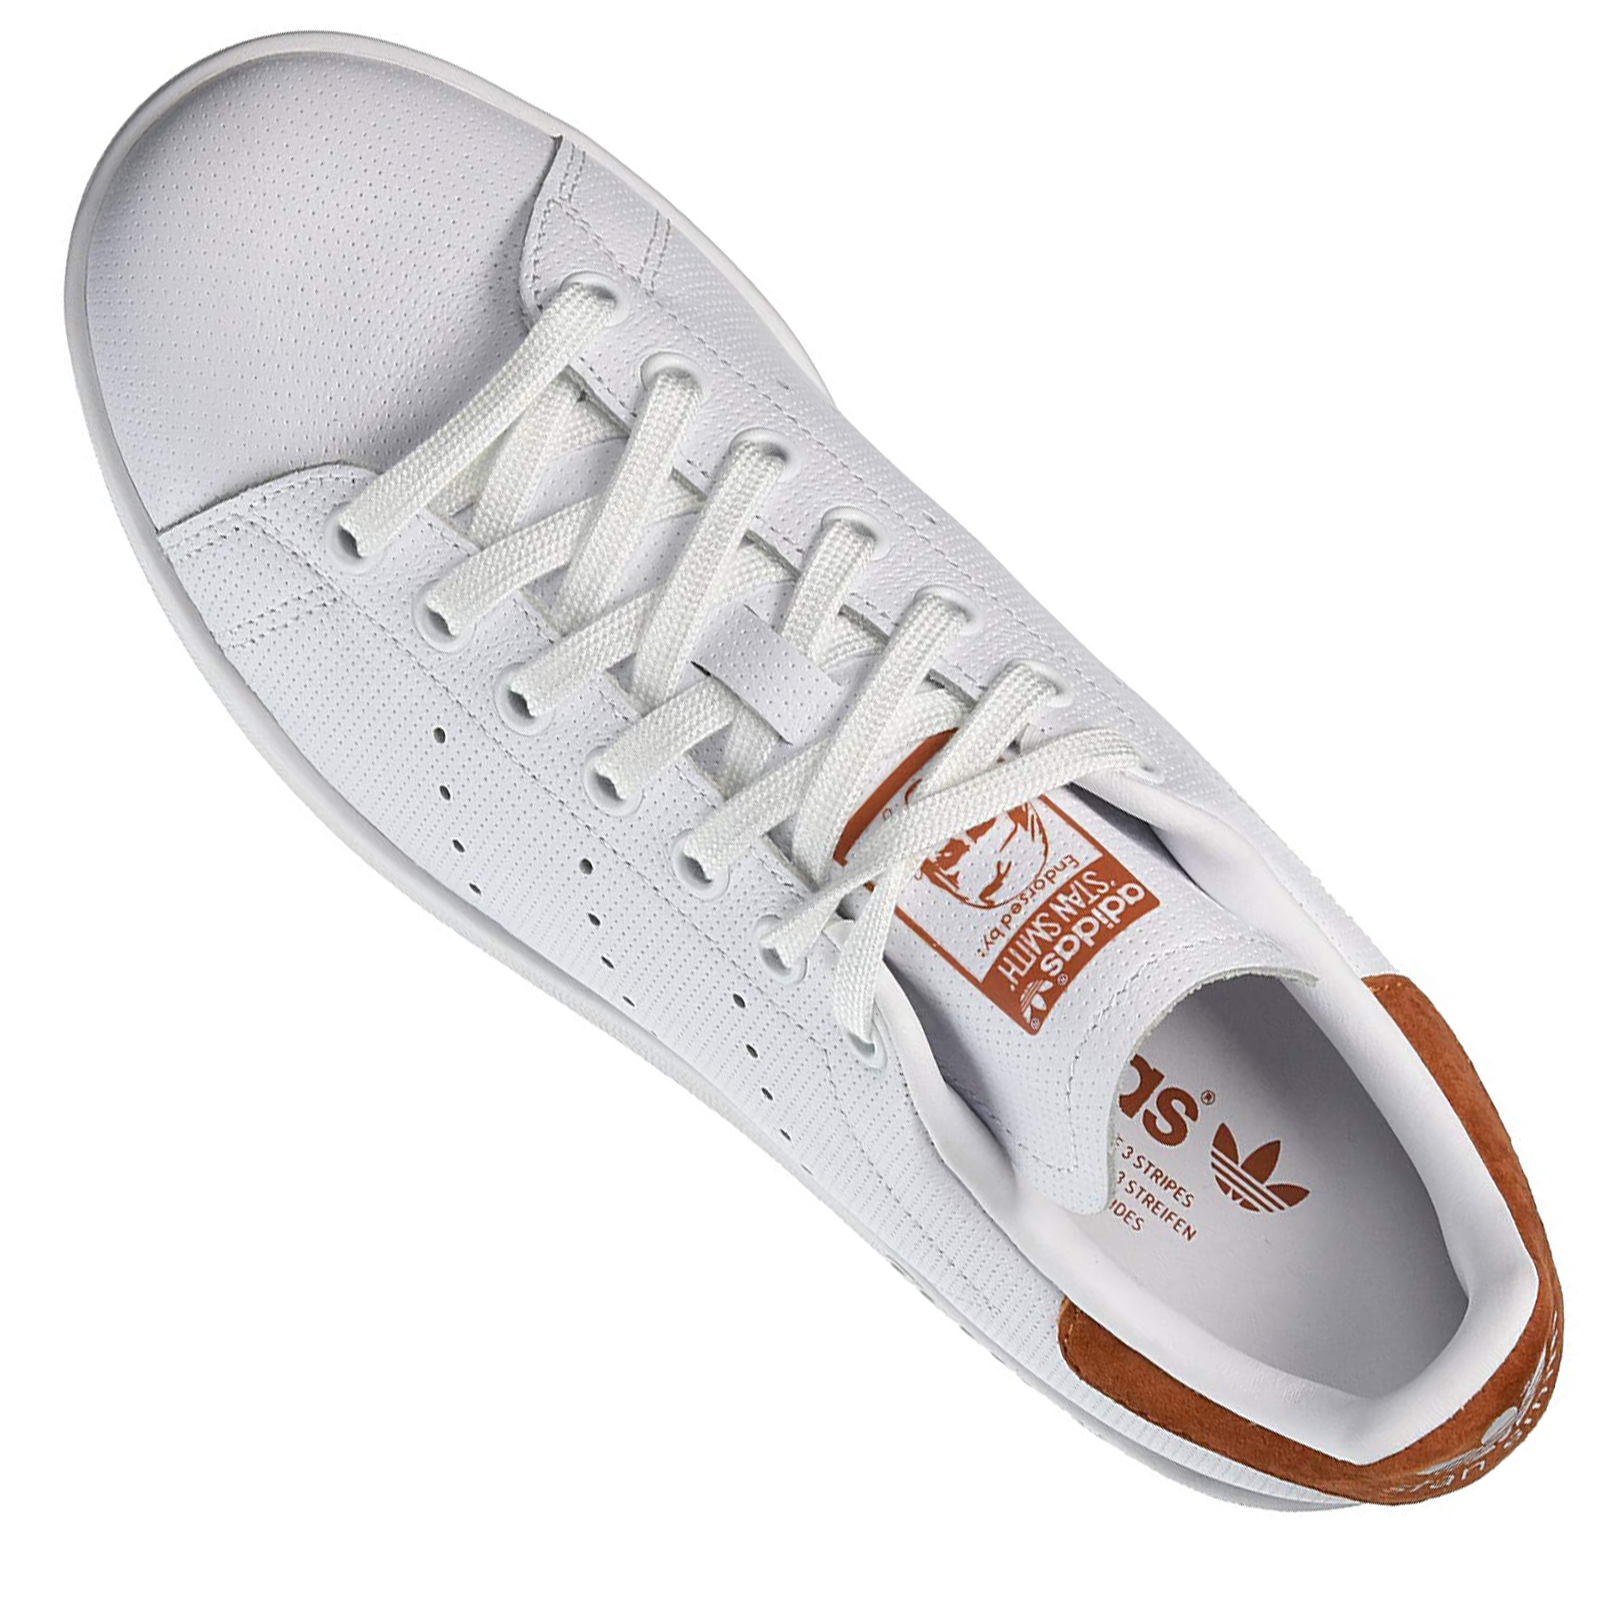 Details about Adidas Originals Stan Smith Perf Trainers Shoes B38040 Leather White Foxred